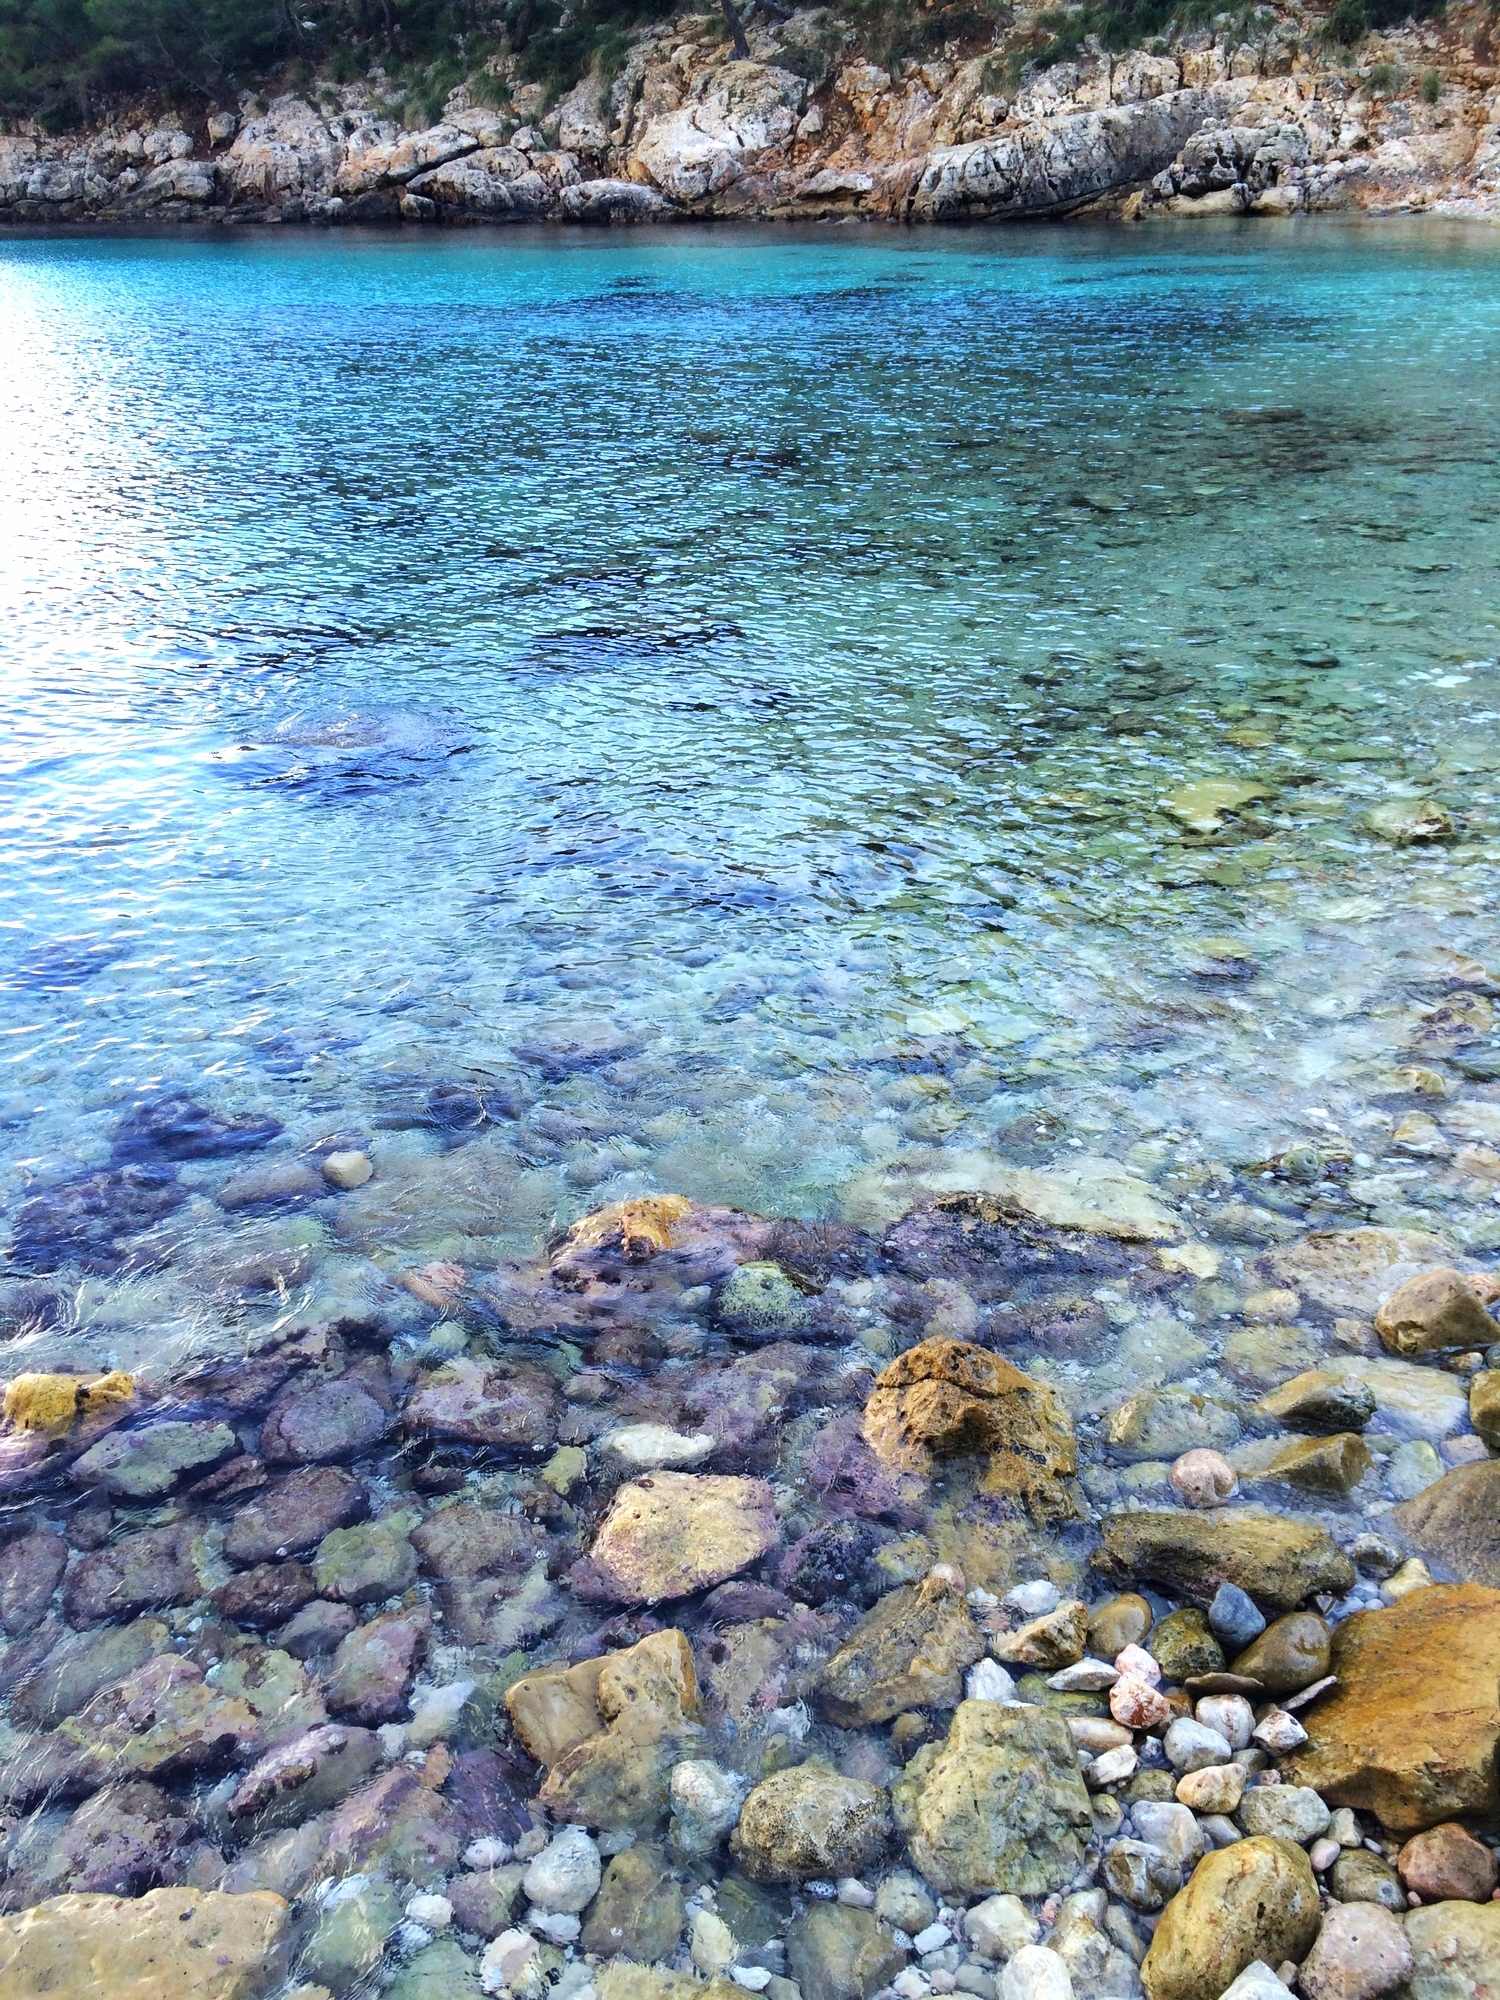 Clear waters at Cala Murta in Formentor